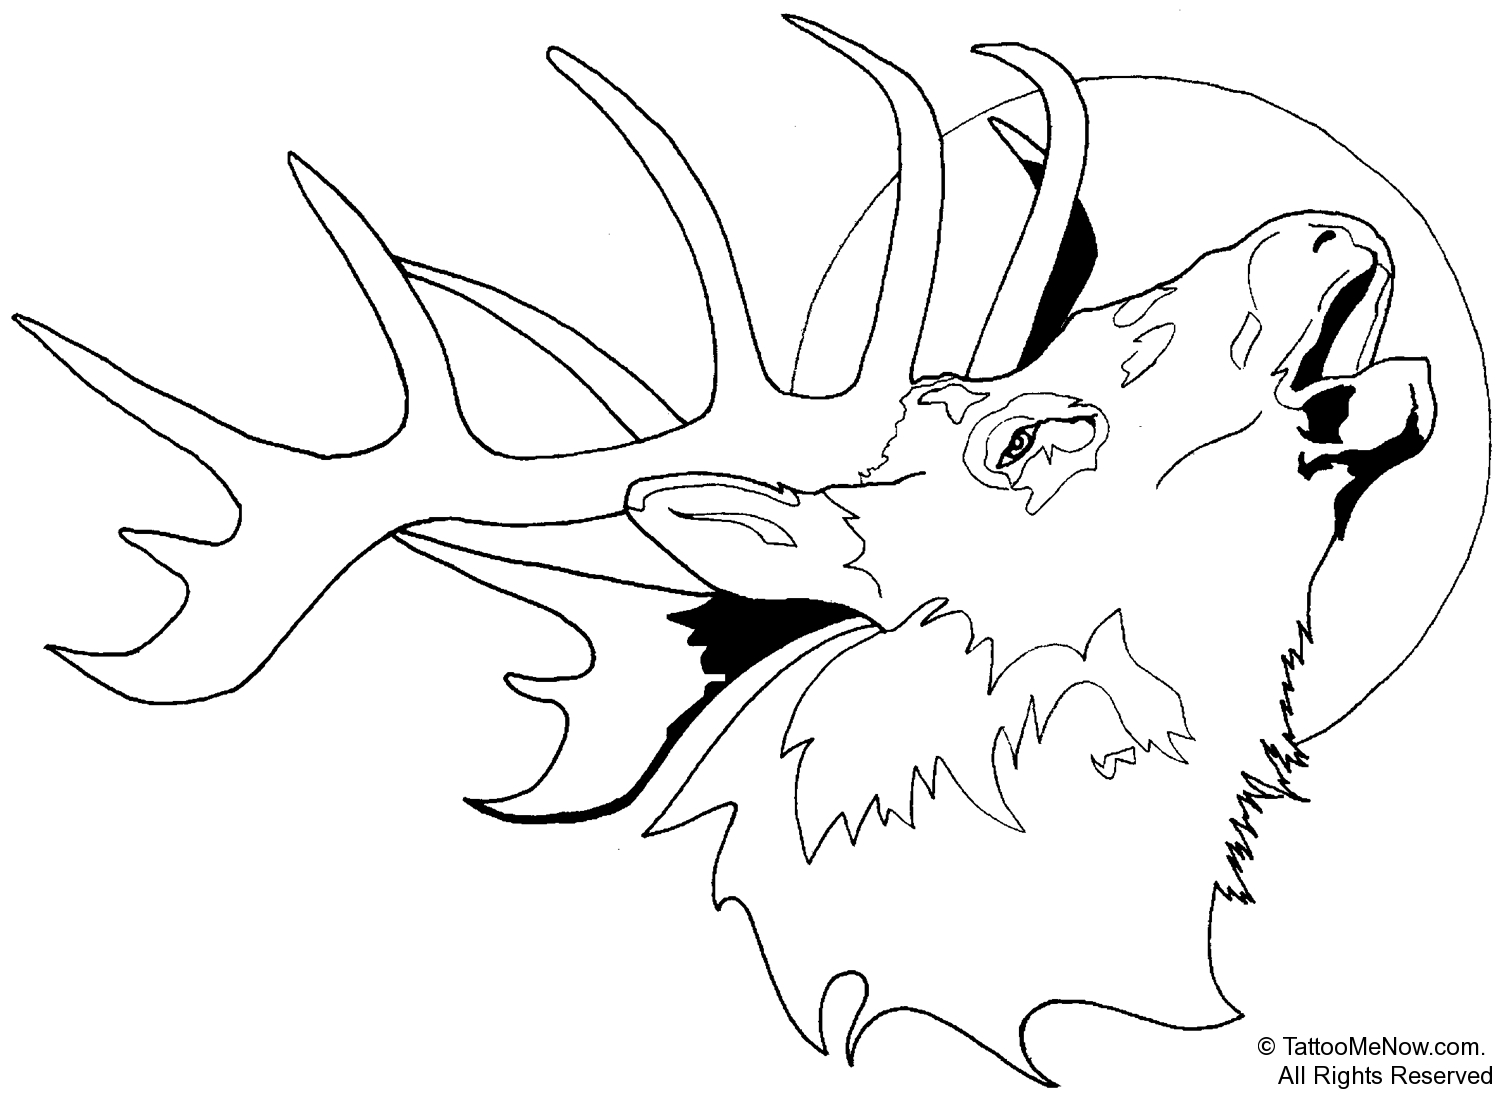 Adult Cute Elk Coloring Page Gallery Images best elk coloring pages jamesenye bull download and print for free images